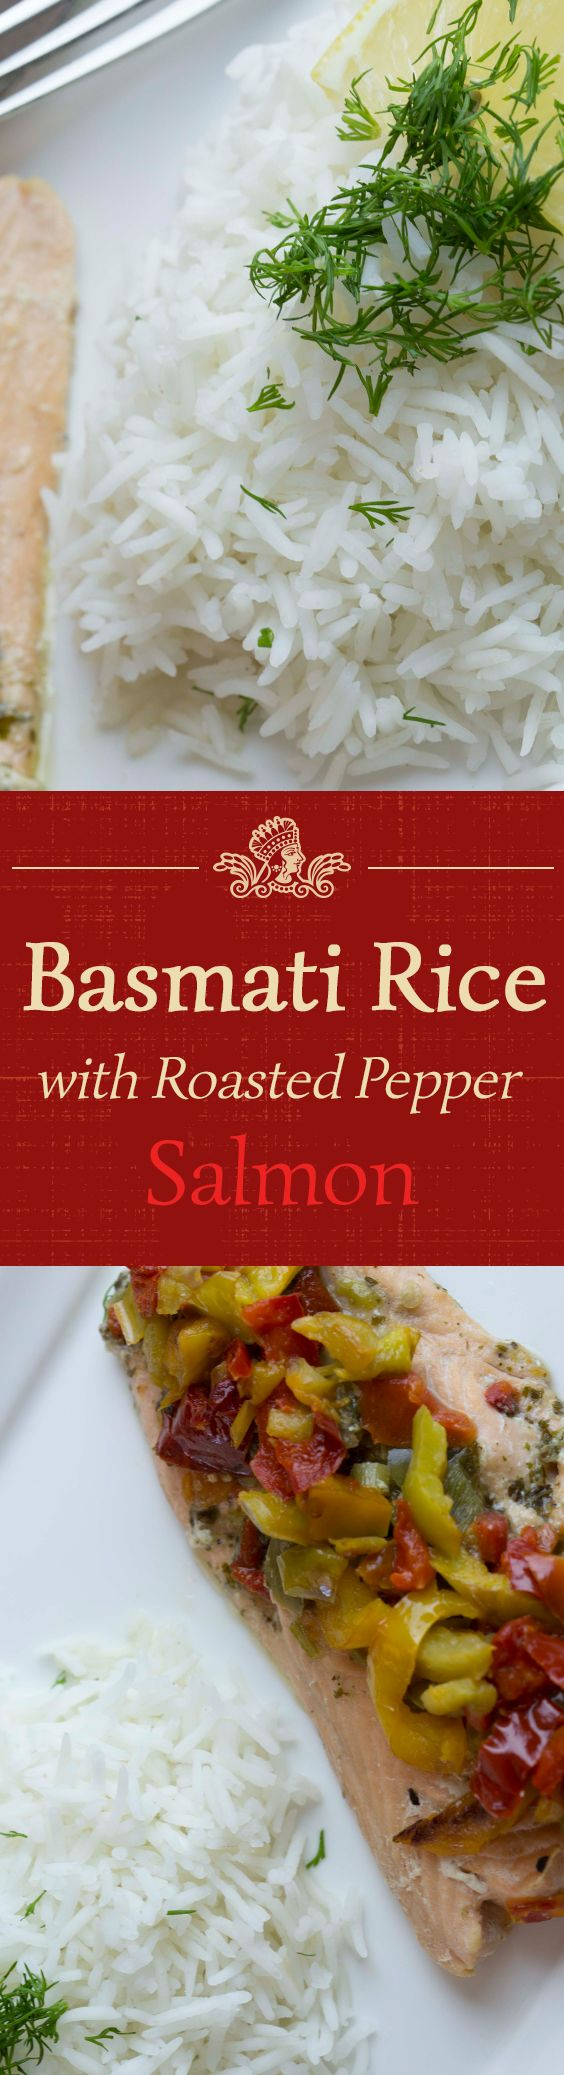 Salmon with roasted peppers is the perfect match for Royal Basmati Rice.